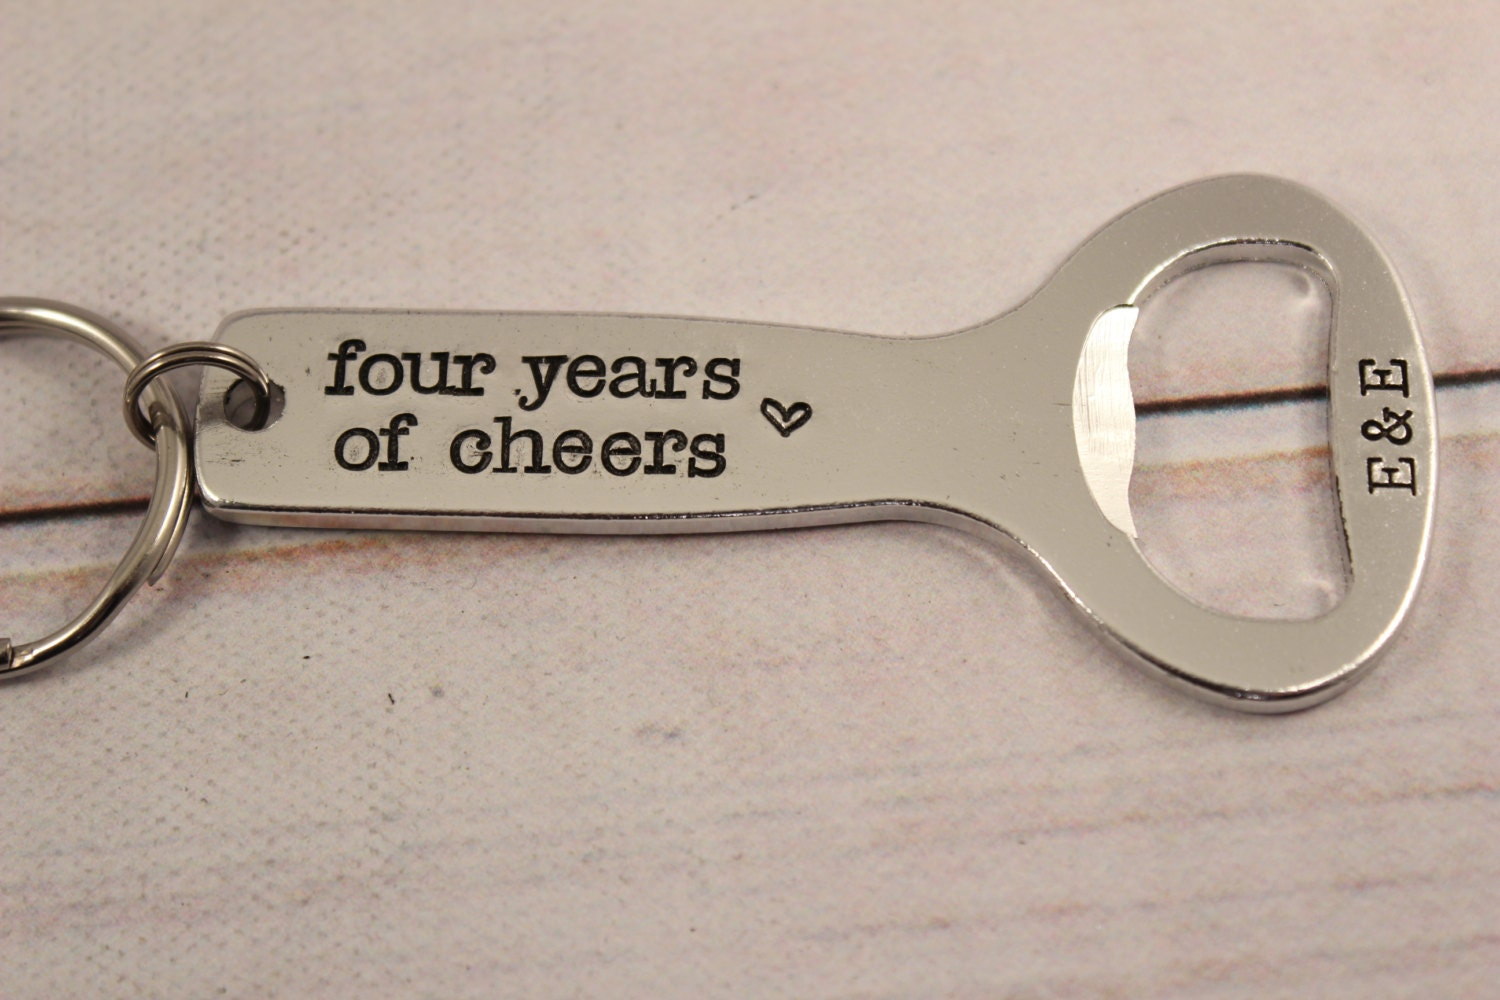 years of cheers personalized bottle opener keychain your. Black Bedroom Furniture Sets. Home Design Ideas